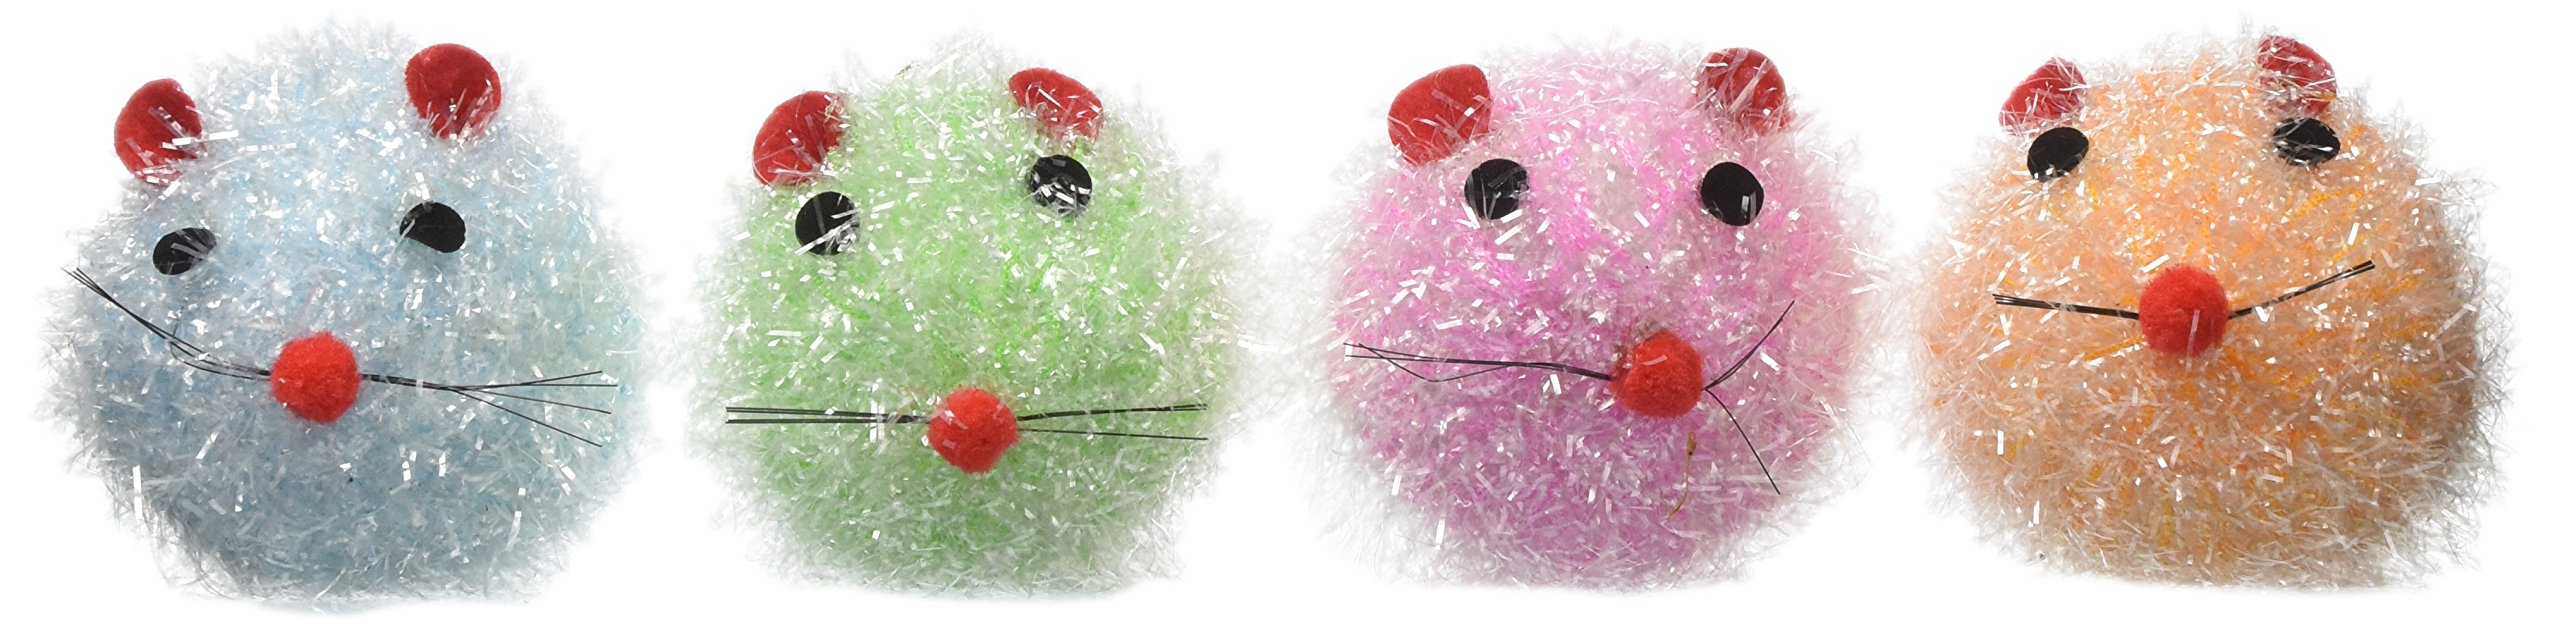 Cat-A-Lack 24-Piece Tinsel Mice Squeak Toy with Bell Jar